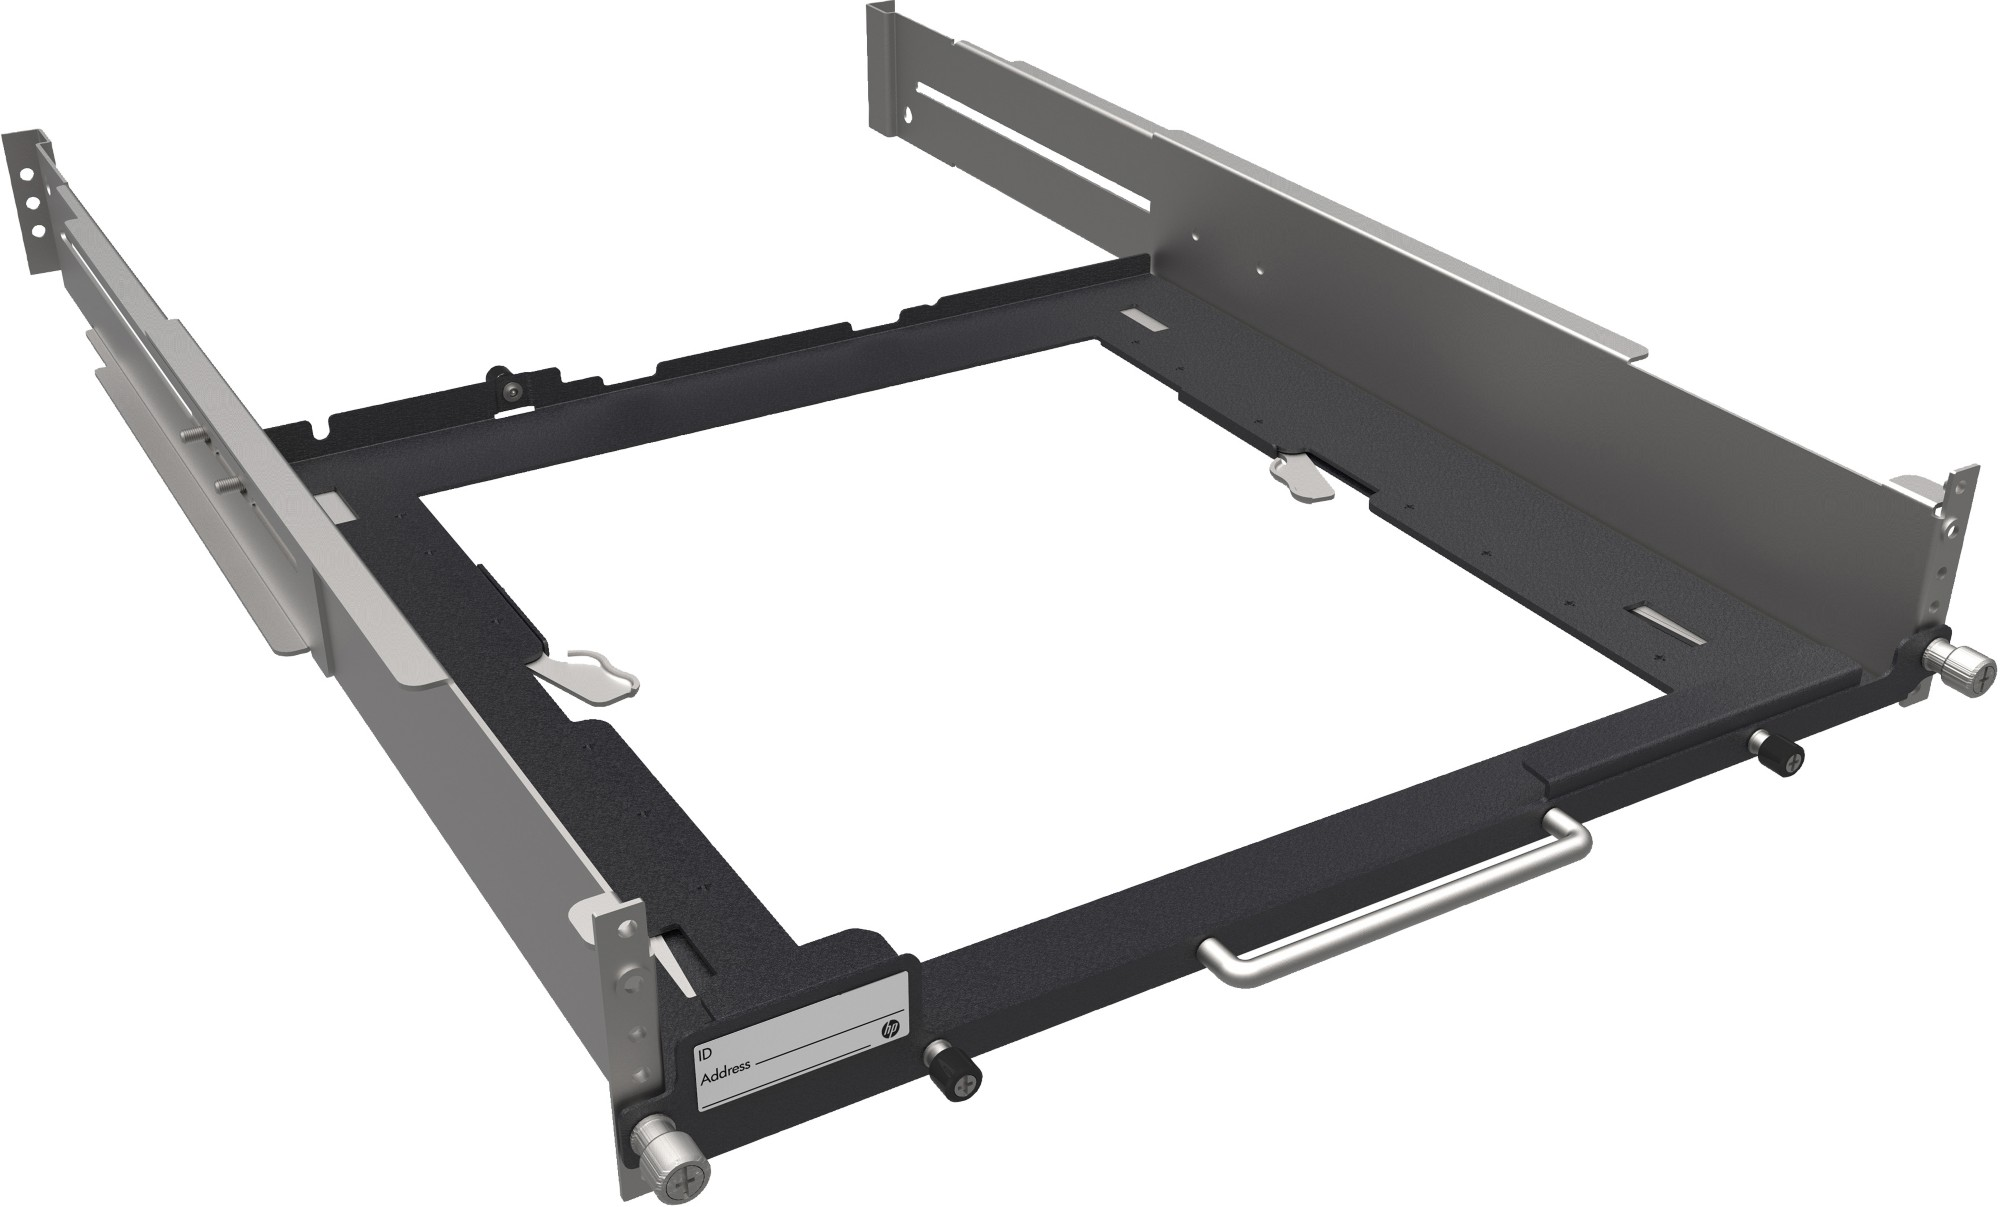 HP W6D62AA Z2/Z4 DEPTH ADJUST FIXED RAIL RACK KIT